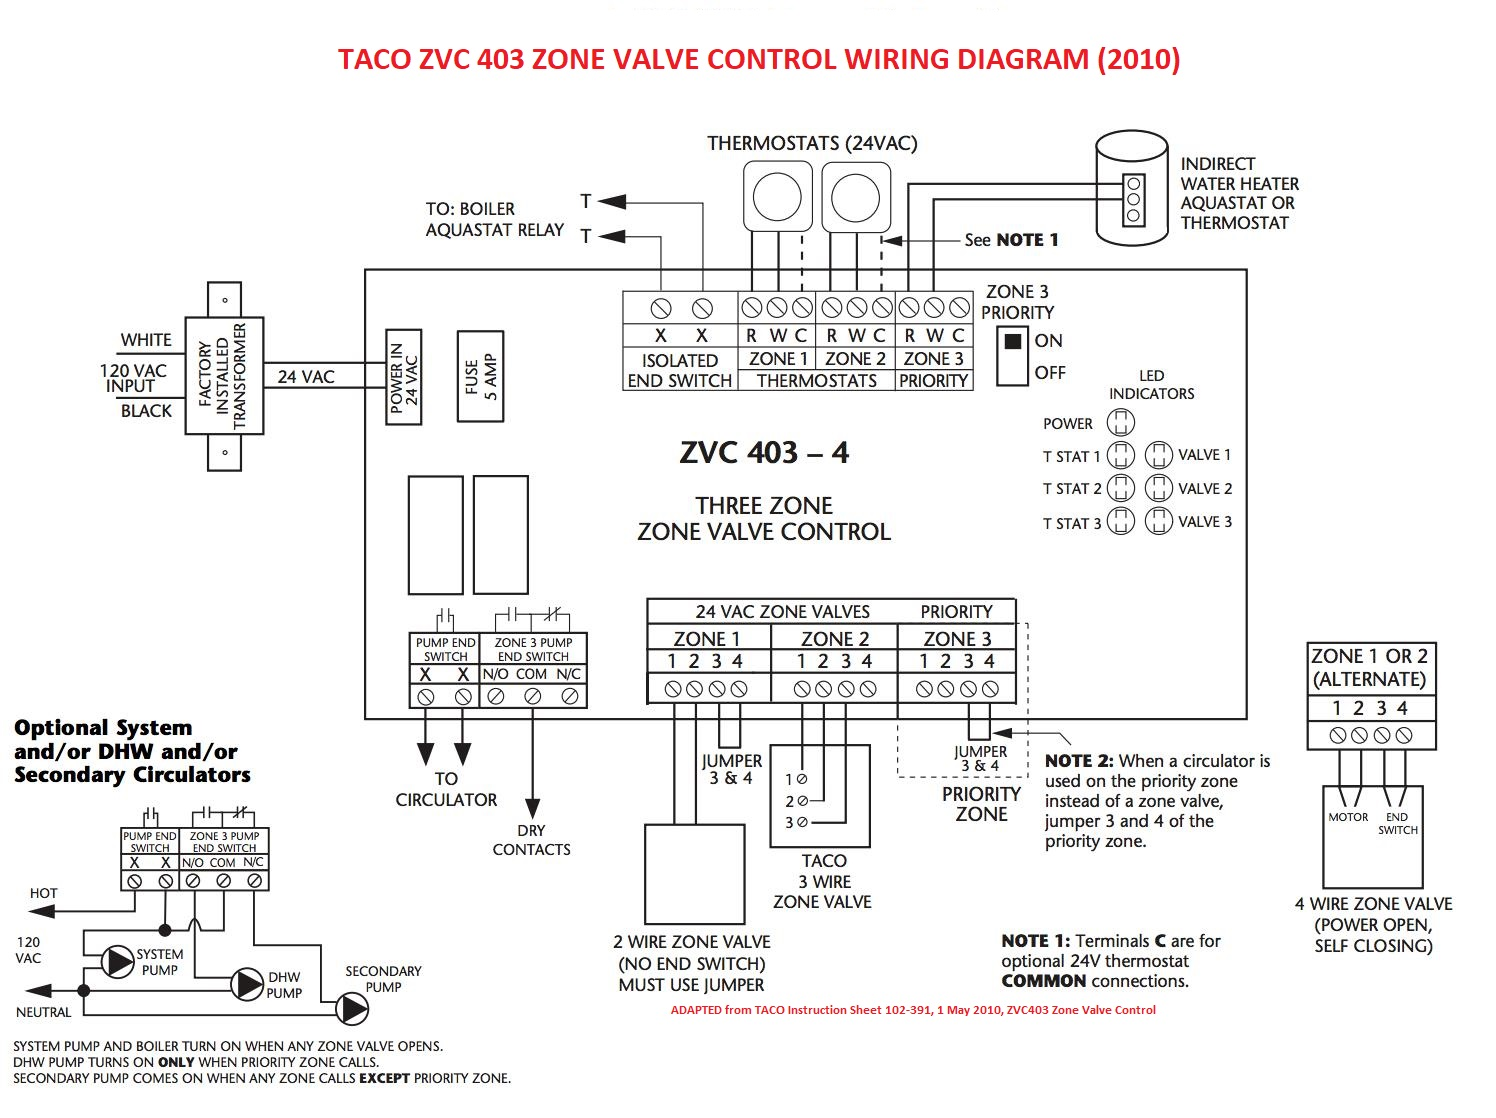 3 wire thermostat wiring diagram for a boiler wiring library rh uitgeverijdewereld nl